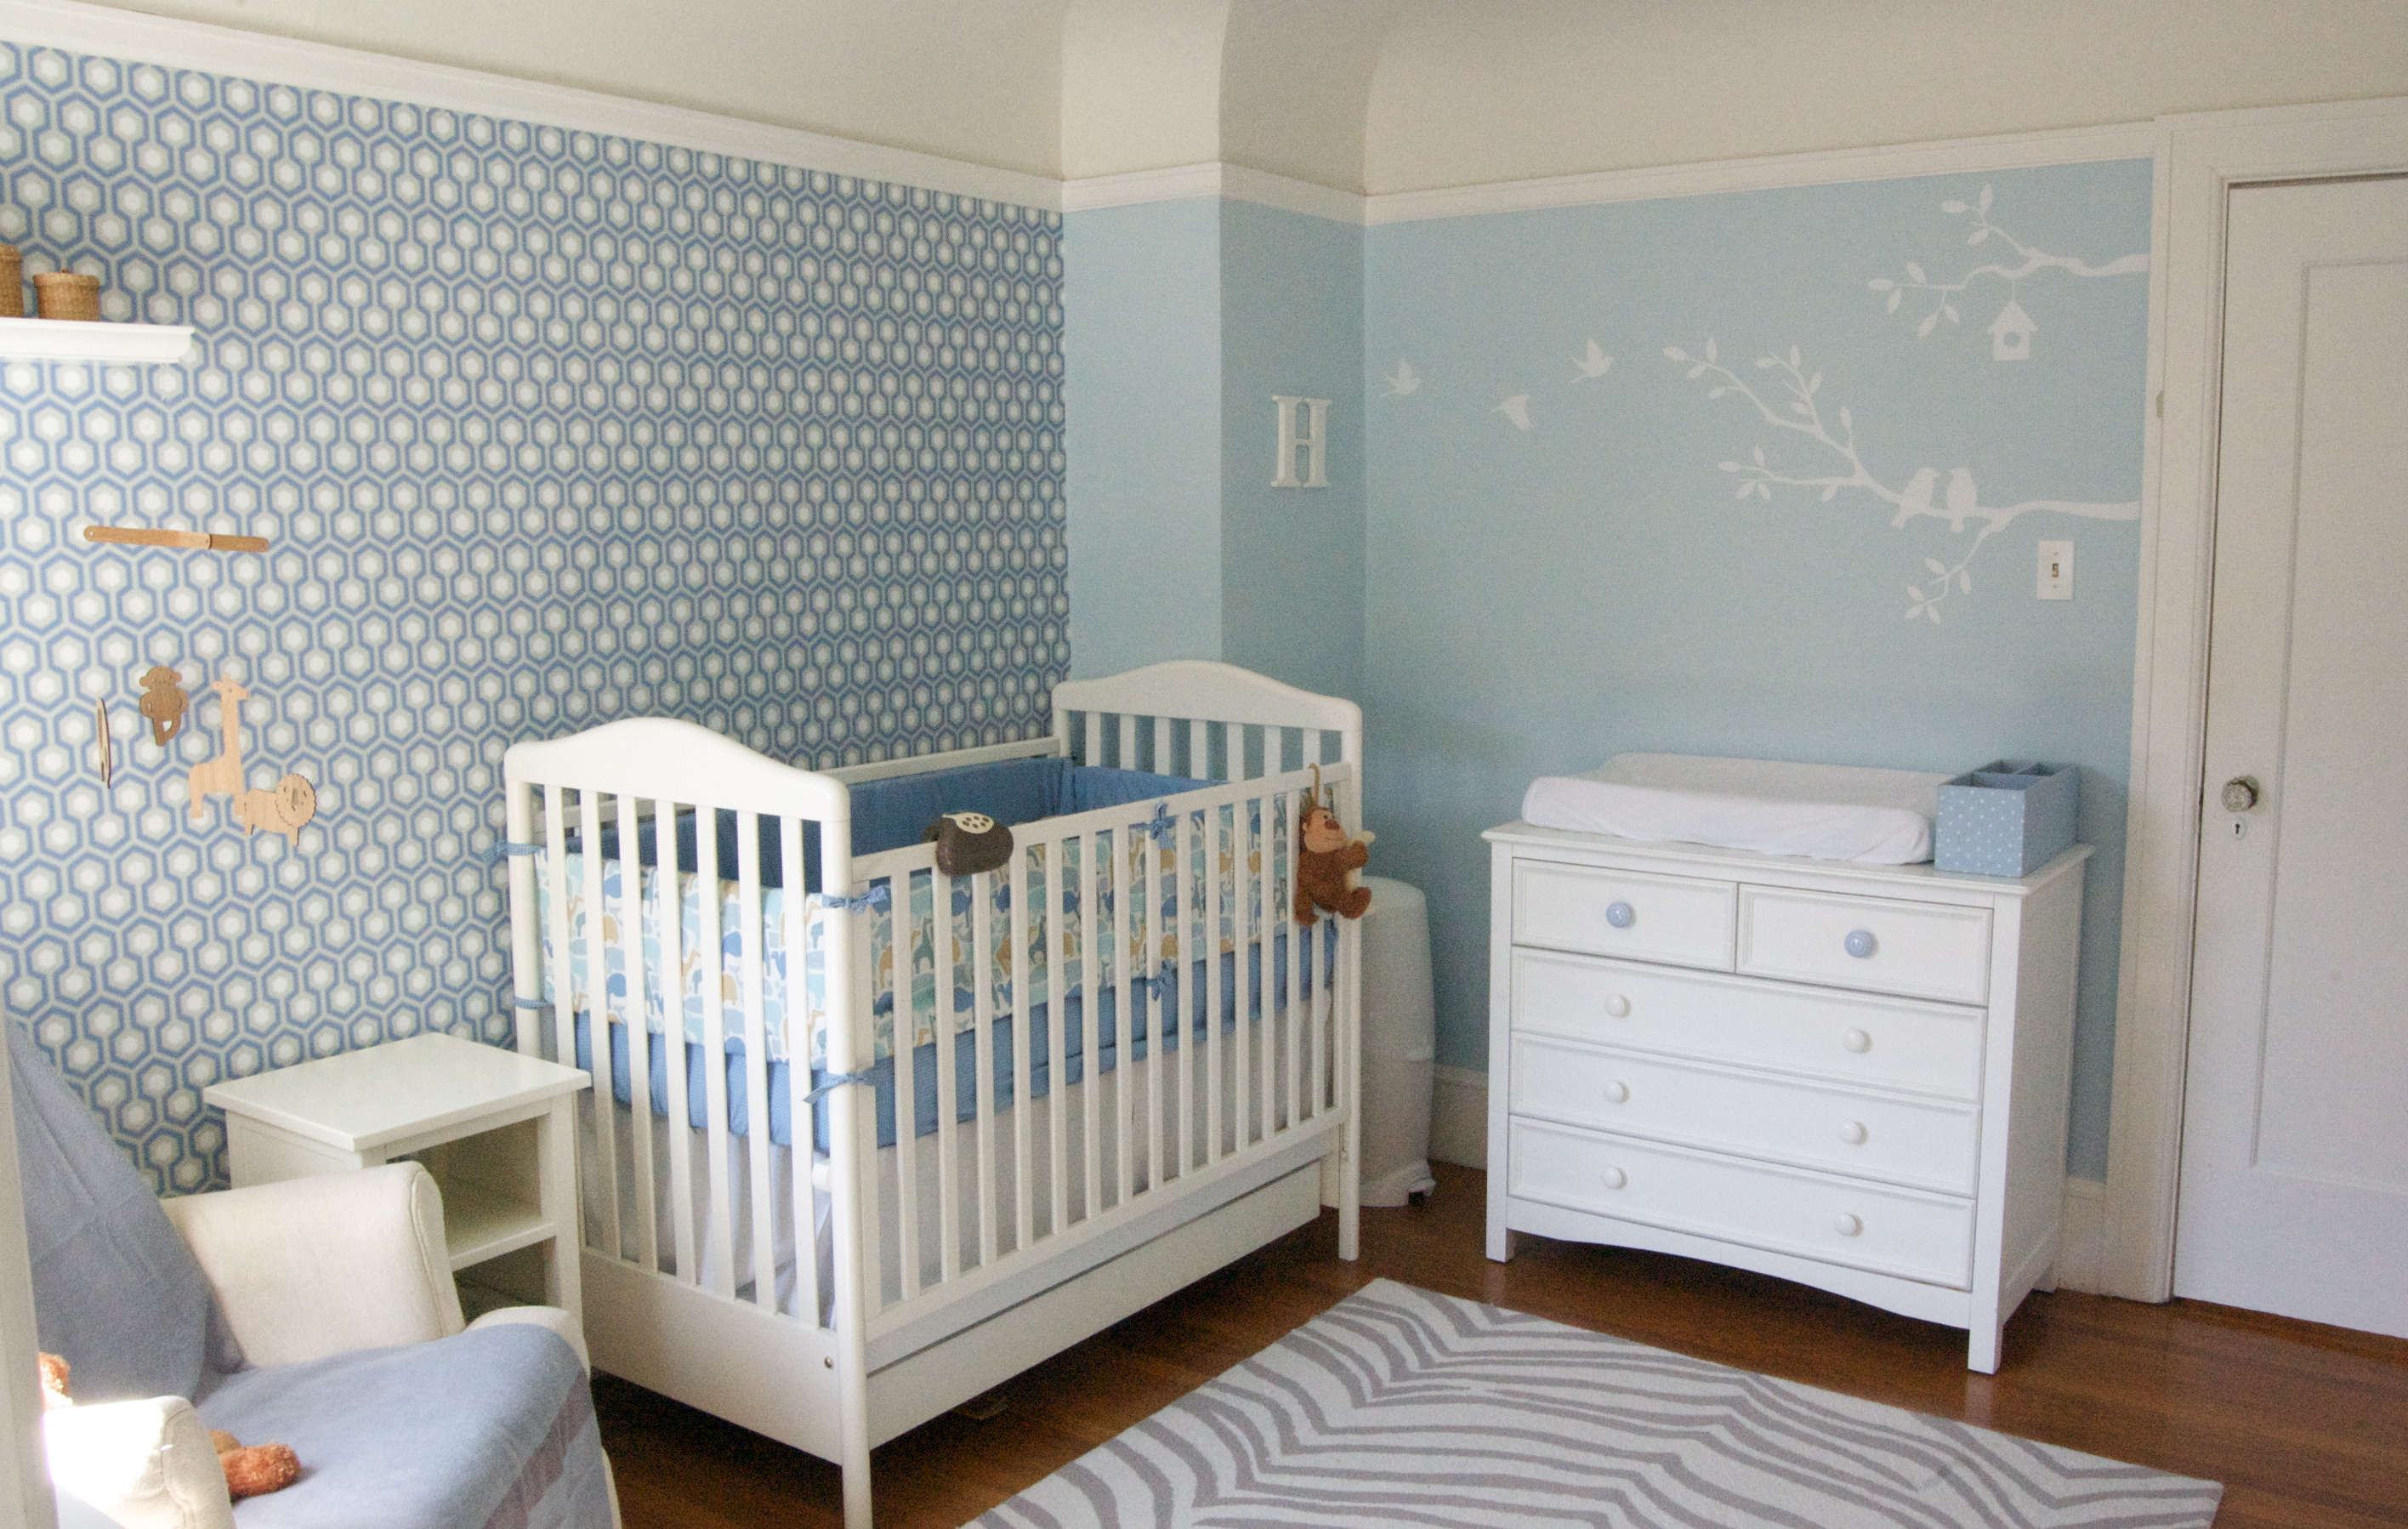 Top Baby Boy Nursery Designs of 2011 title=